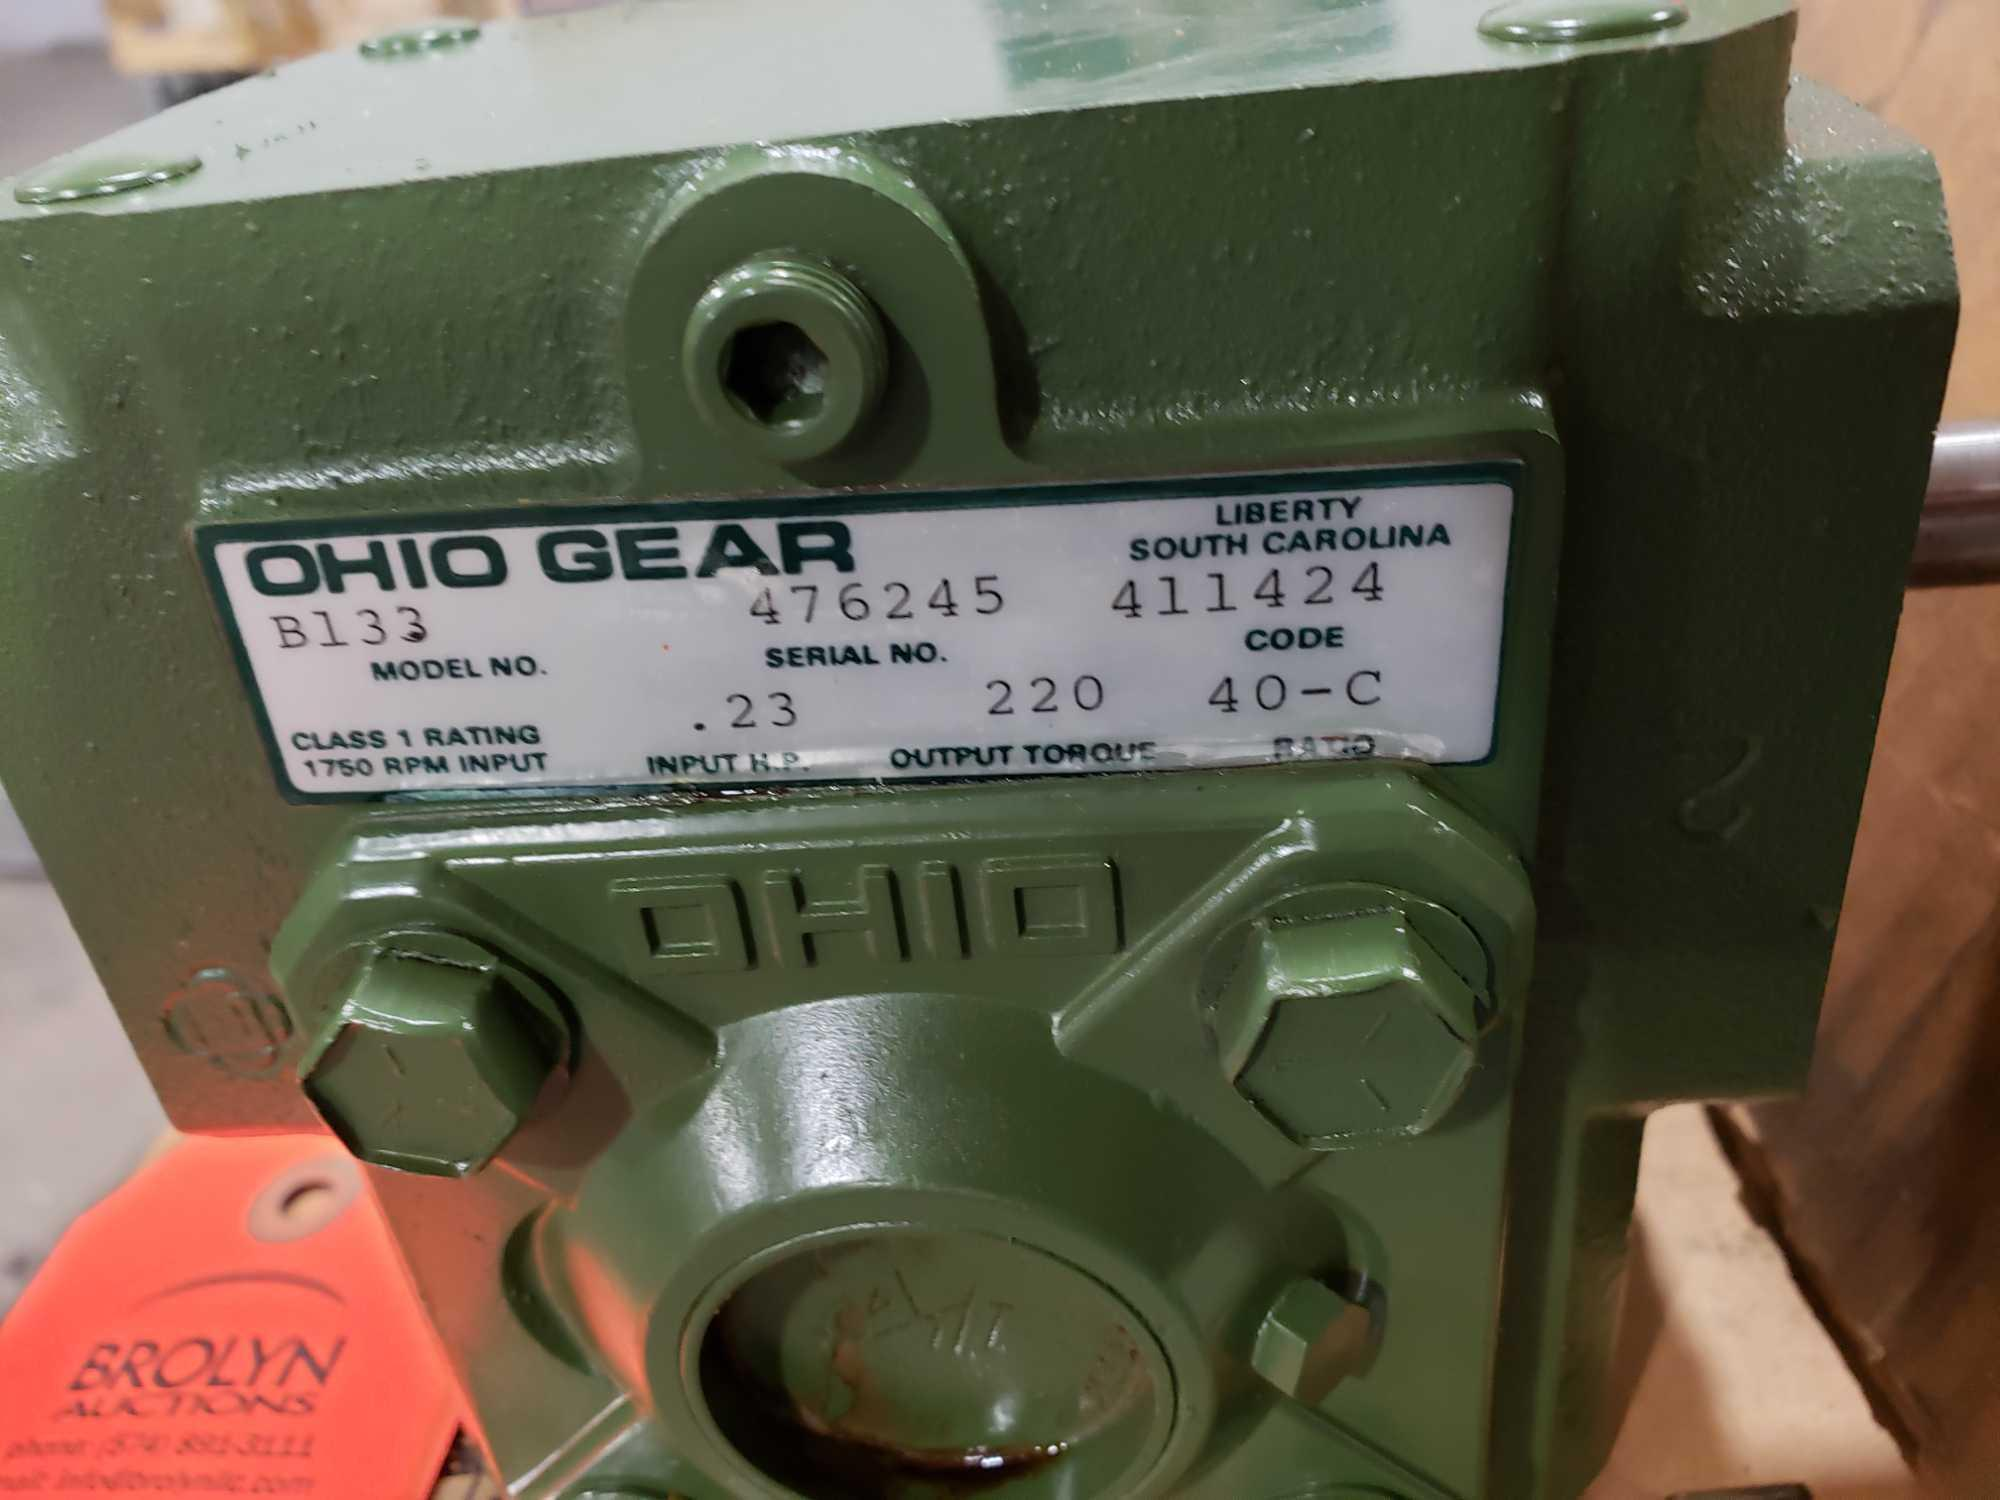 Lot 45 - Ohio Gear model B-133 gearbox. 40-C ratio. New in box.